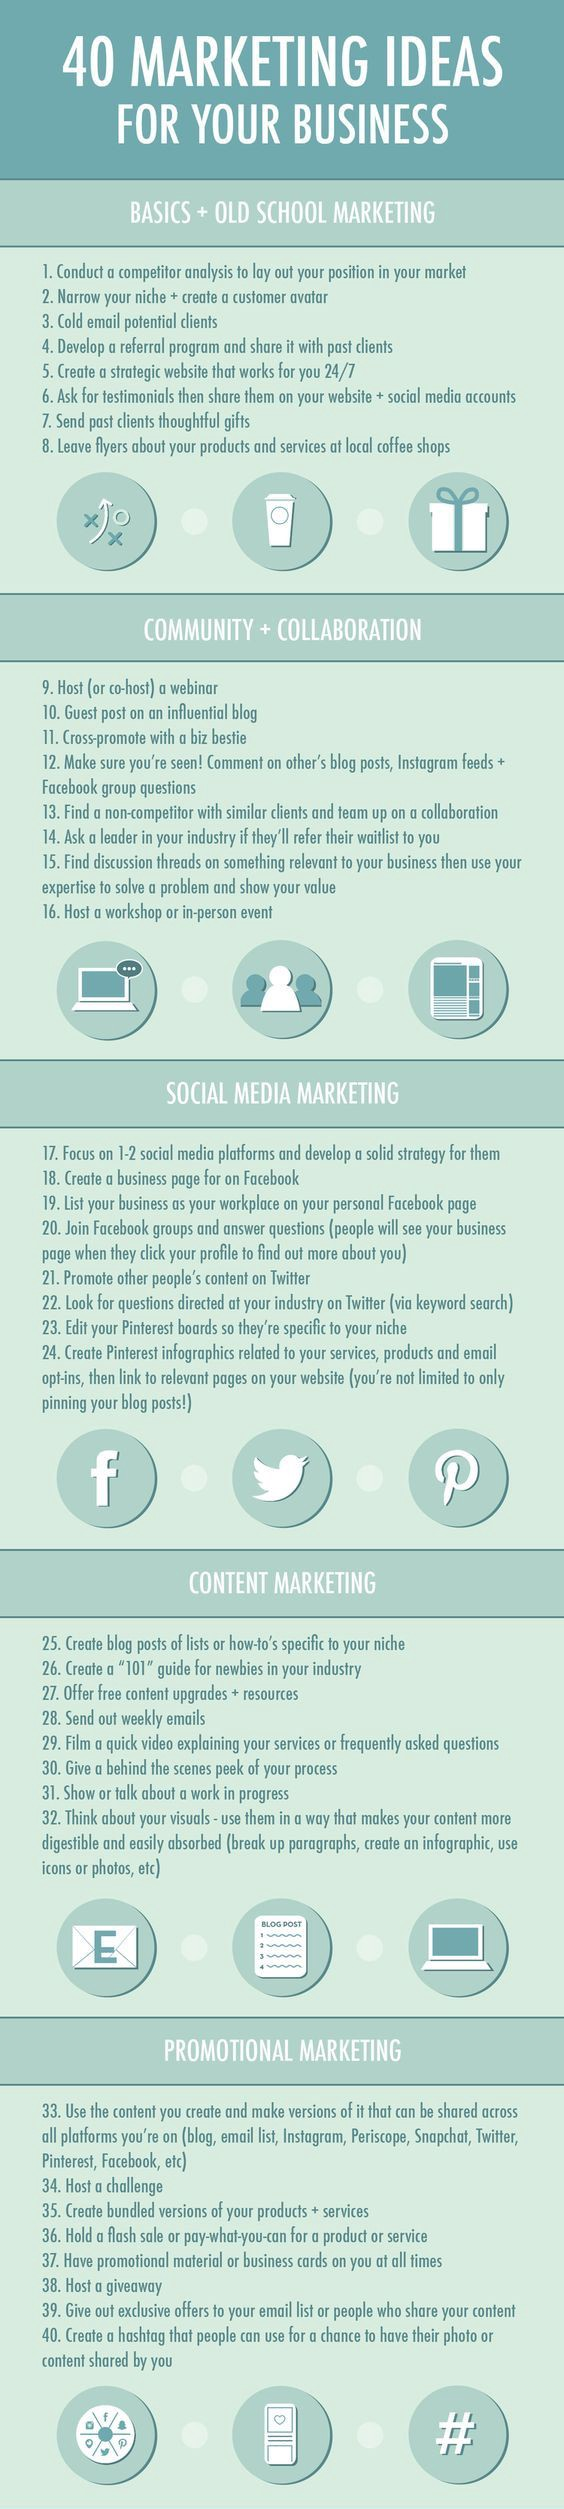 40 Marketing Ideas For Your Business - Travis Beauchesne